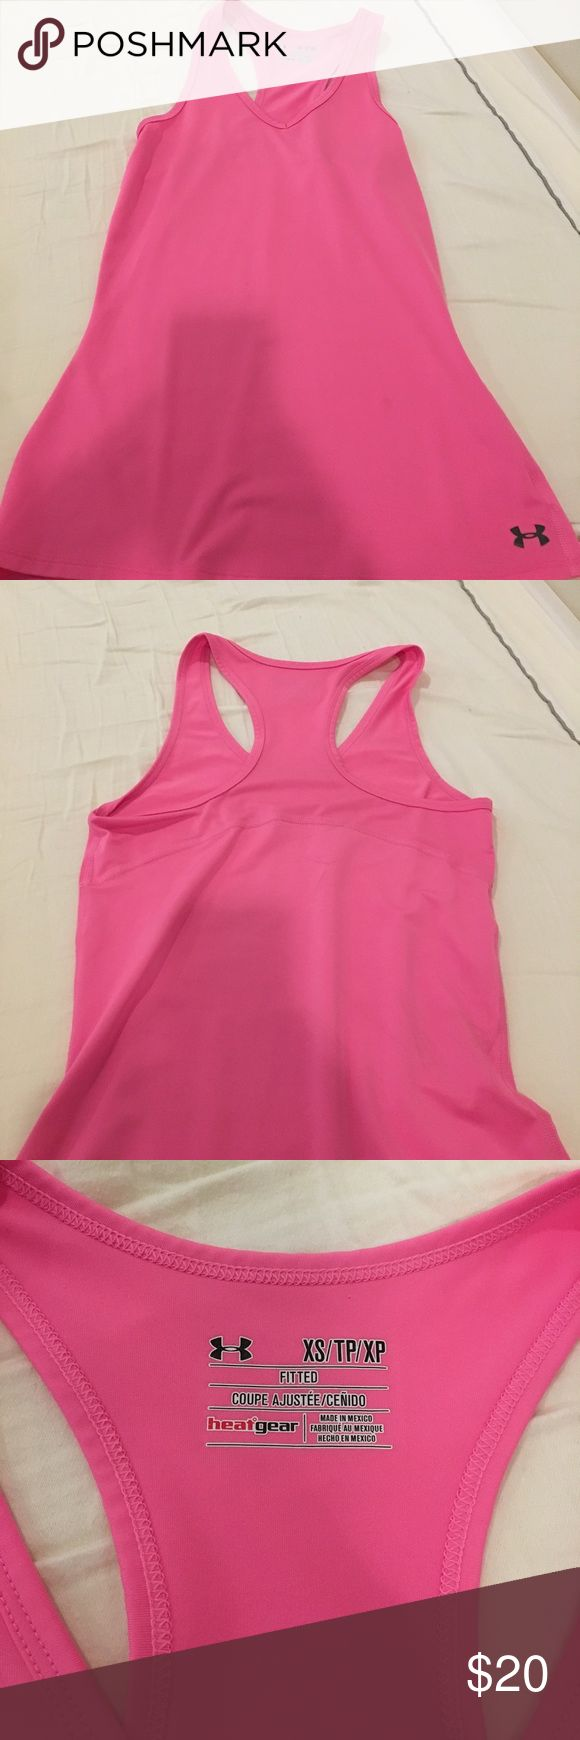 under armor workout tank it's a pink racer back tank. only worn a few times Under Armour Tops Tank Tops